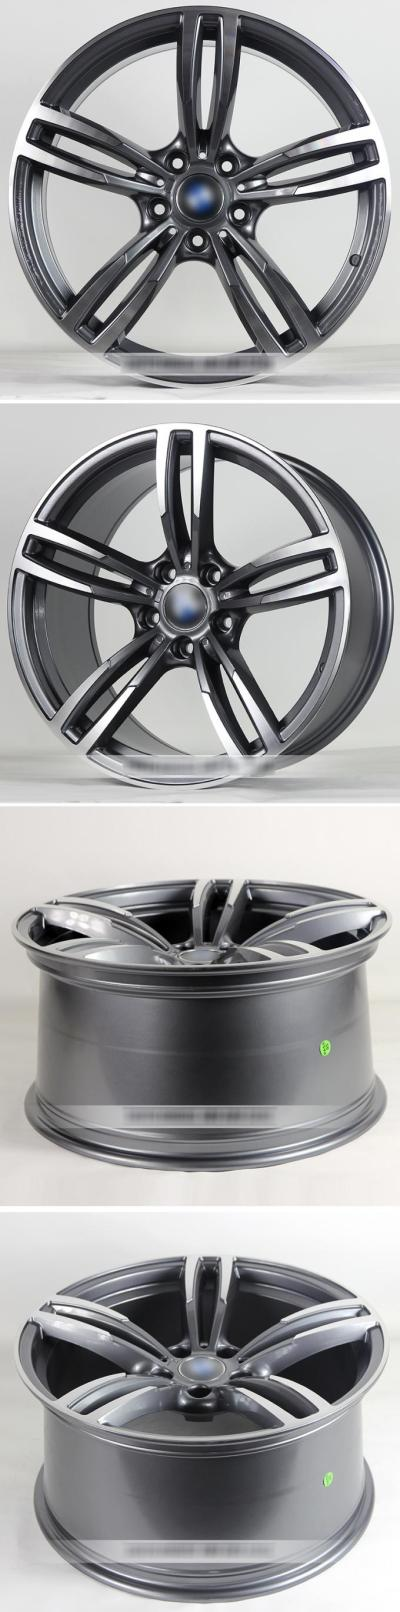 BCZ12 Casting Wheels/Staggered Wheels/Luxury Rims